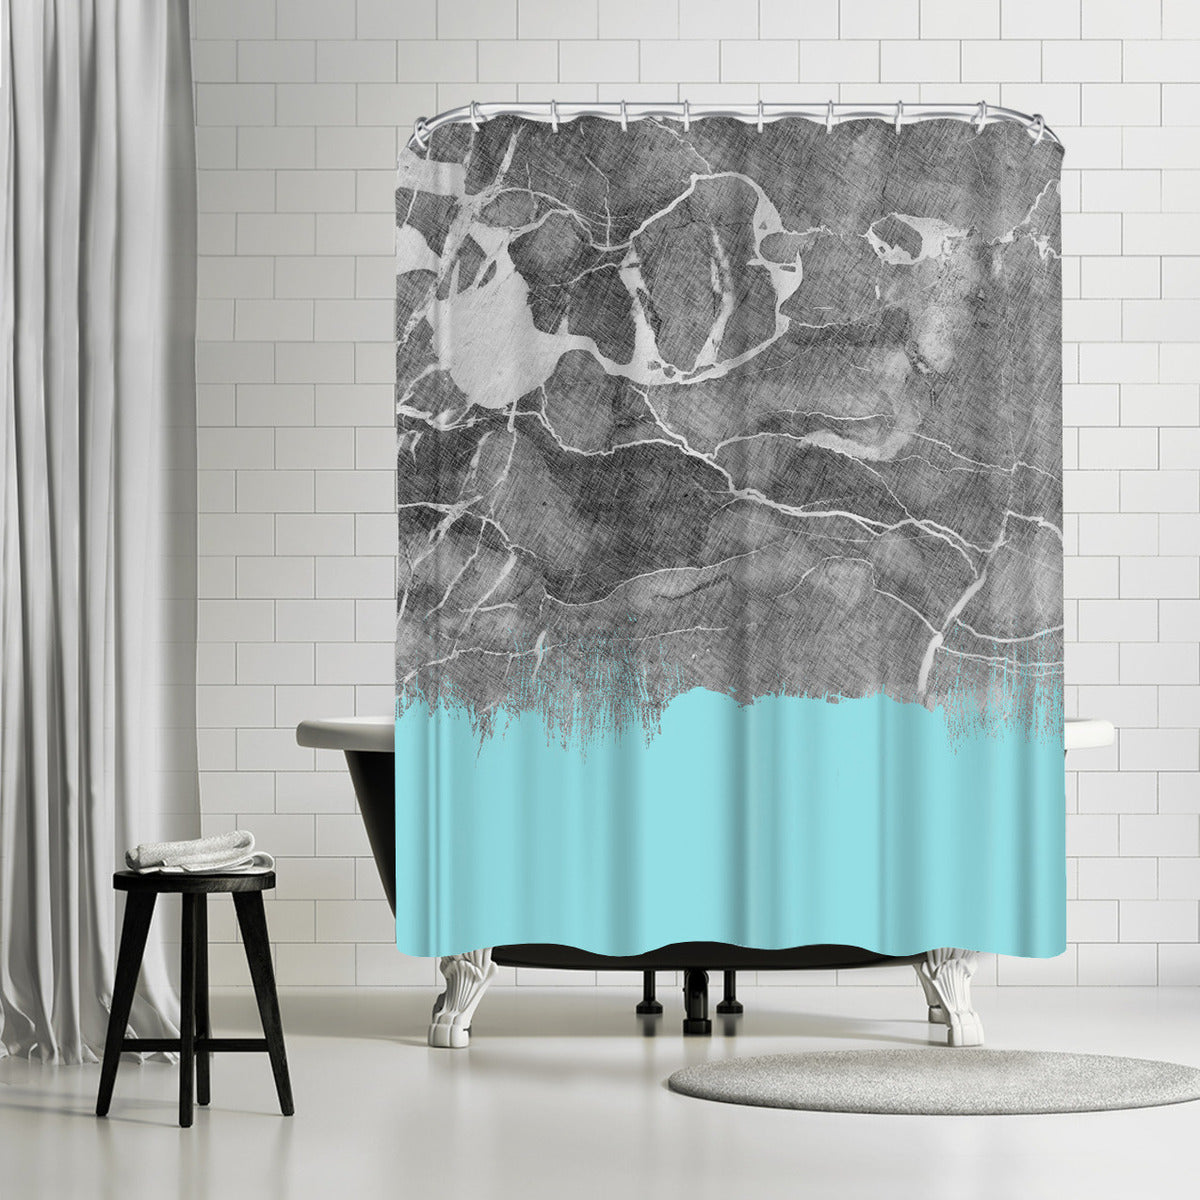 Crayon Marble With Light Blue by Emanuela Carratoni Shower Curtain - Shower Curtain - Americanflat